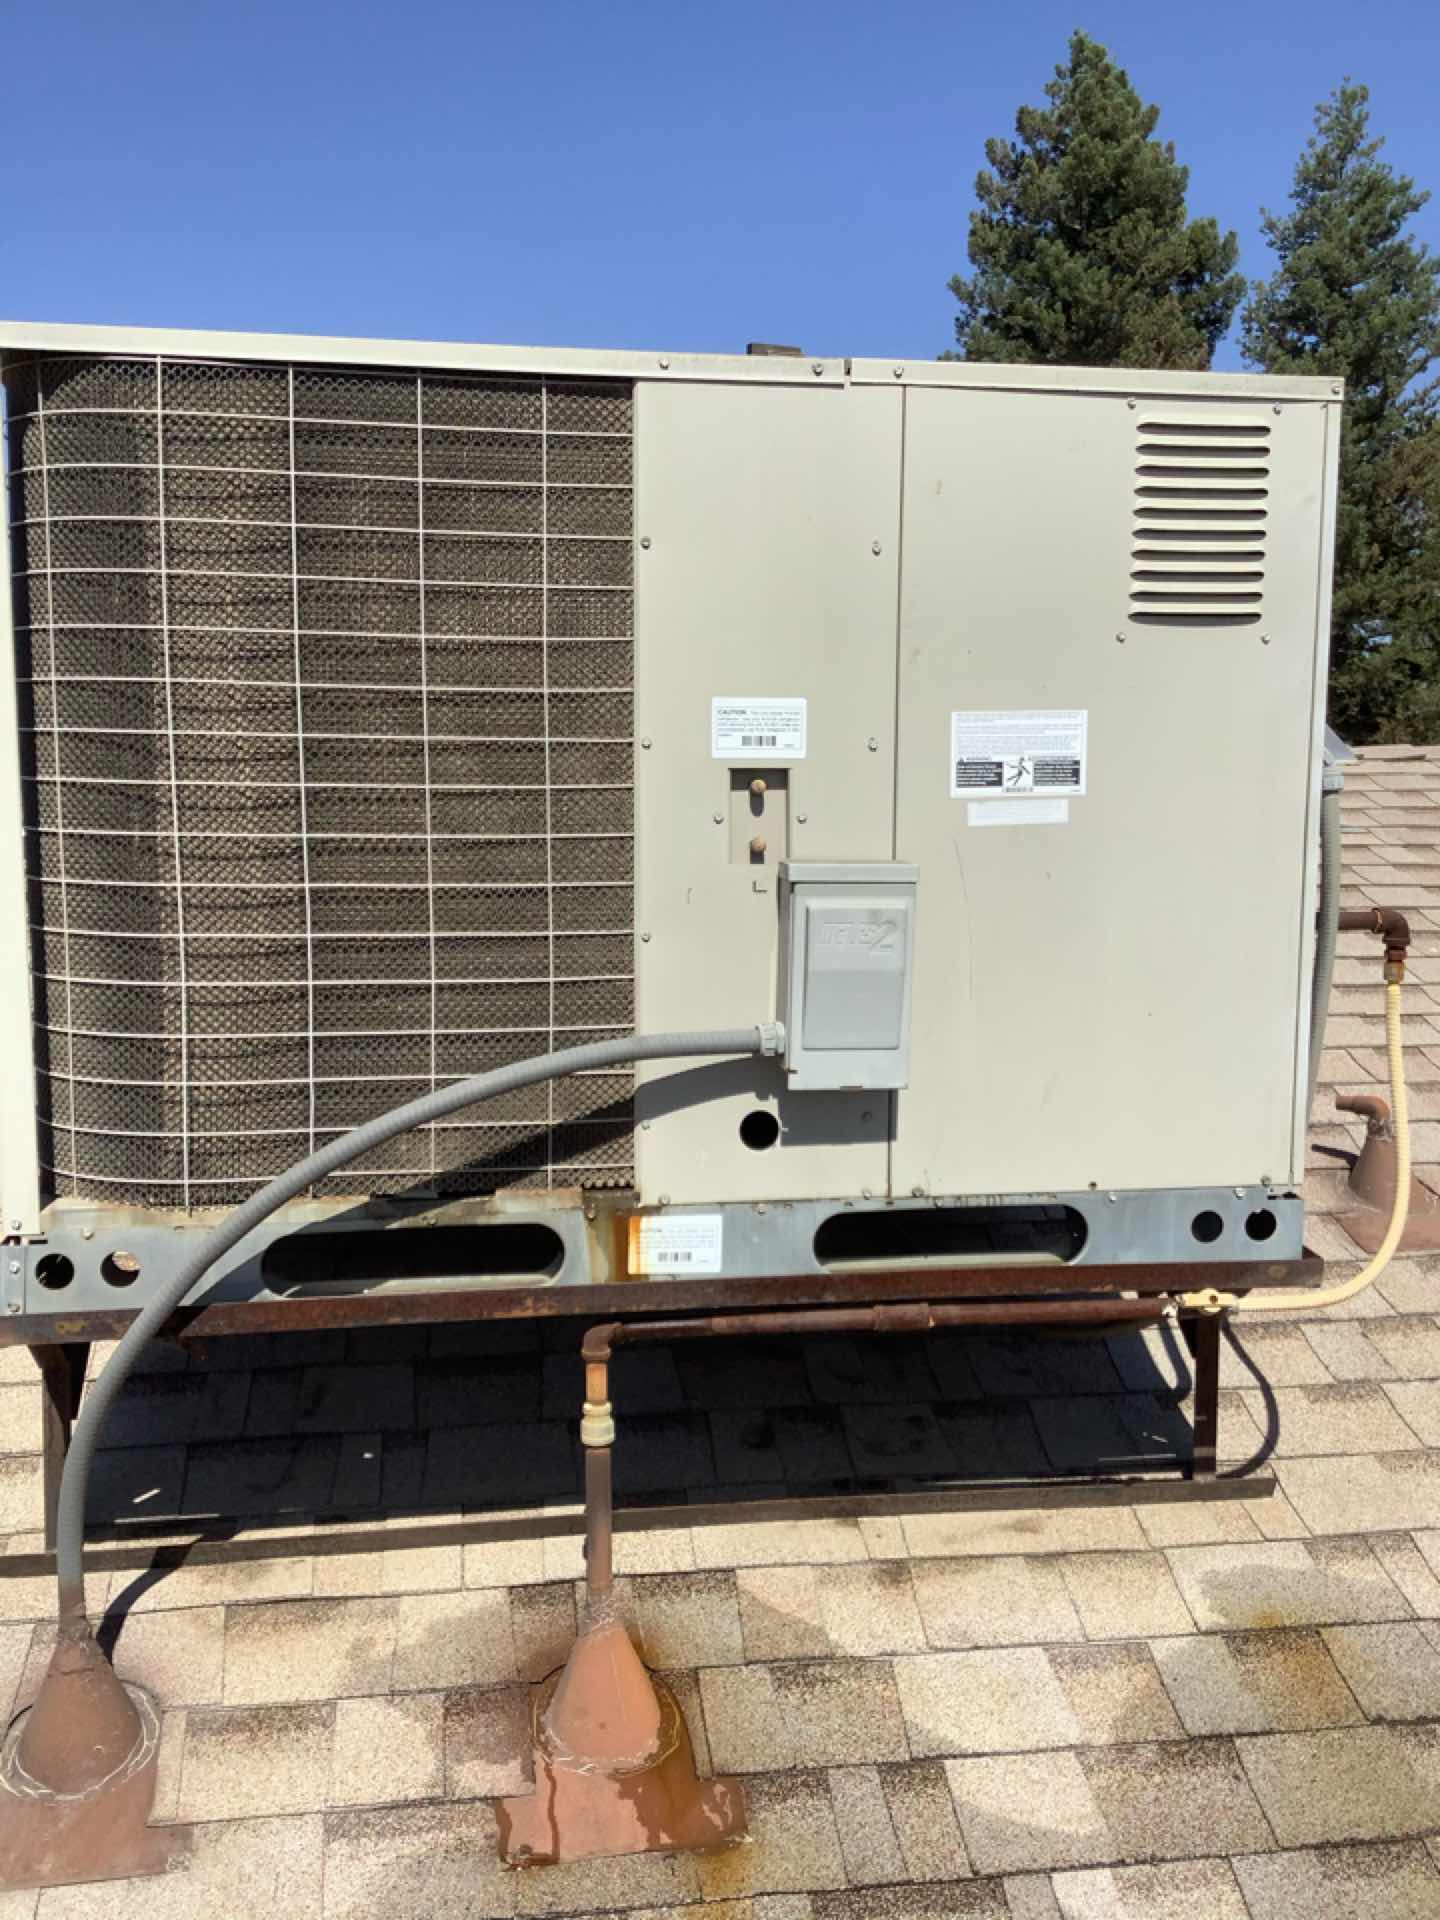 Tulare, CA - Preformed a heating maintenance service on a Tempstar package unit. This past summer had awful air quality due to fires. The Tempstar unit had a layer of ash inside and I was able to clean out burners and get the electrical wires and Circuit board cleaned. It is important to get your A/C serviced and ready for winter to insure it is working properly and no carbon monoxide is leaking into the conditioned space.